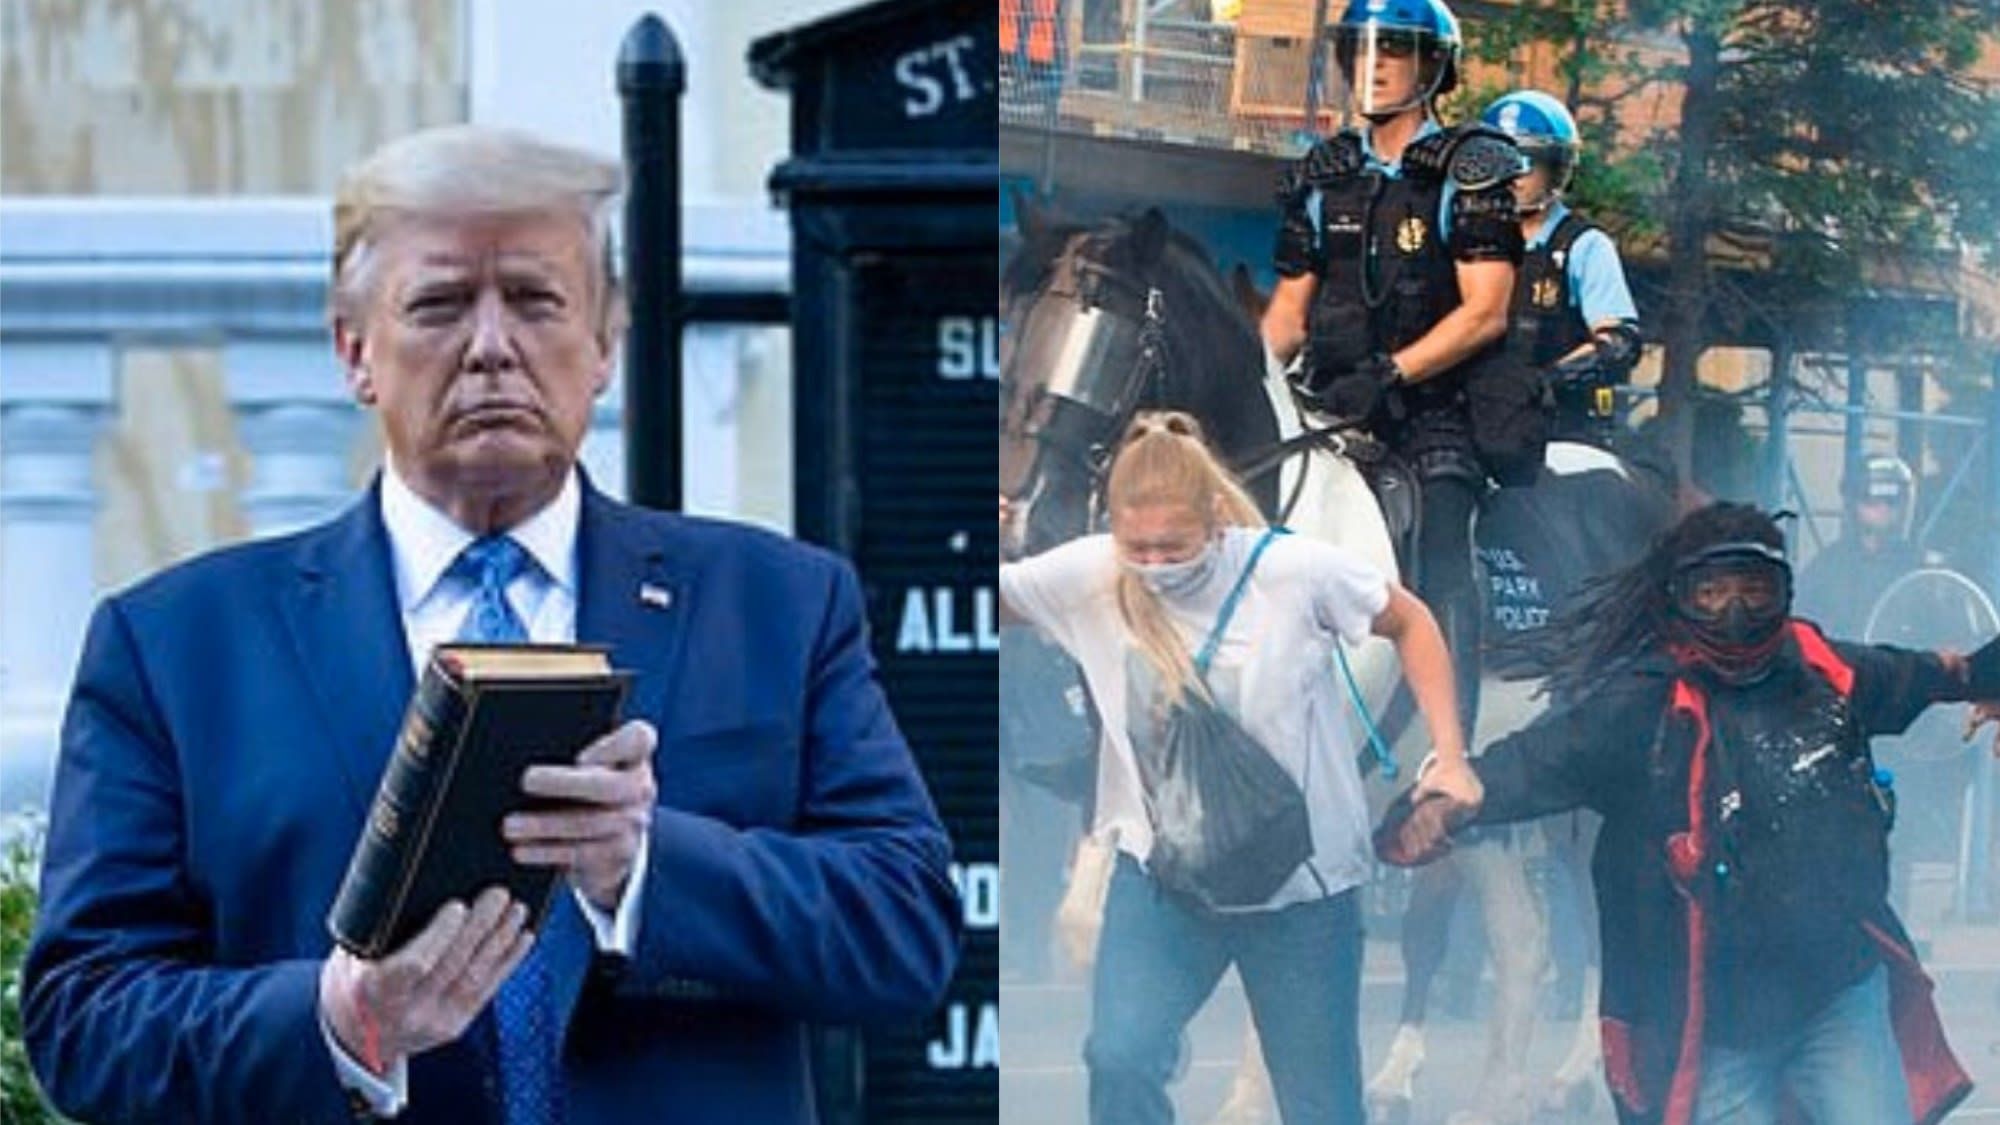 Black Lives Matter D.C. Sues Trump And Federal Government For Using Excessive Force On Protesters Ahead Of Photo-Op